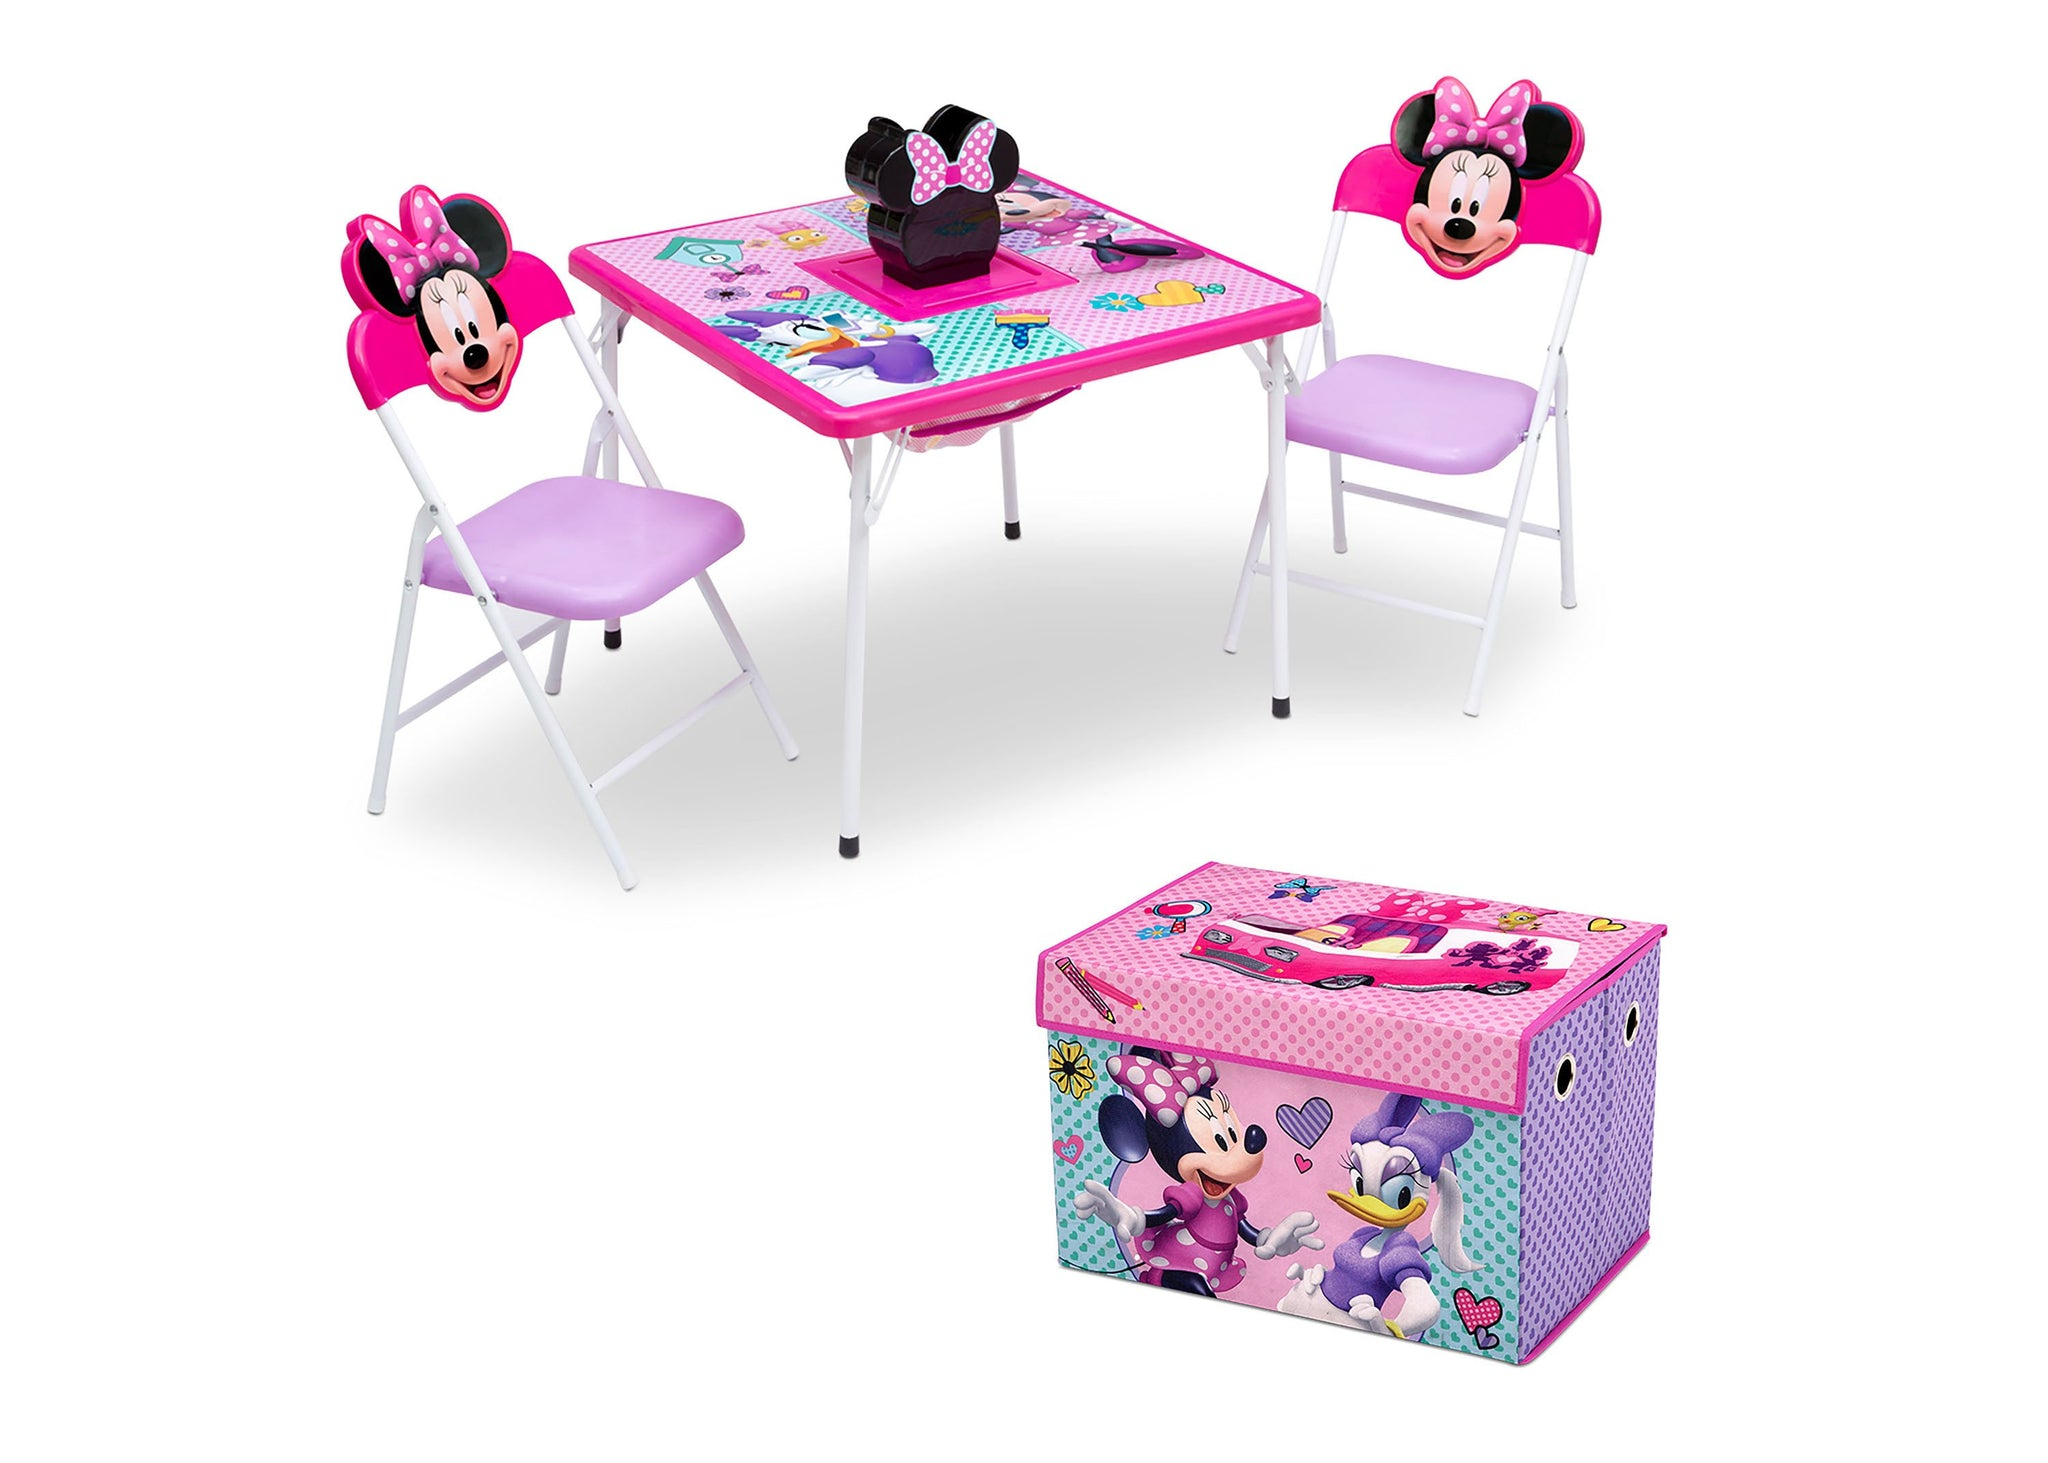 Disney Minnie Mouse (1064) 4-Piece Kids Furniture Set (99533MN), Table and Toy Box, a2a